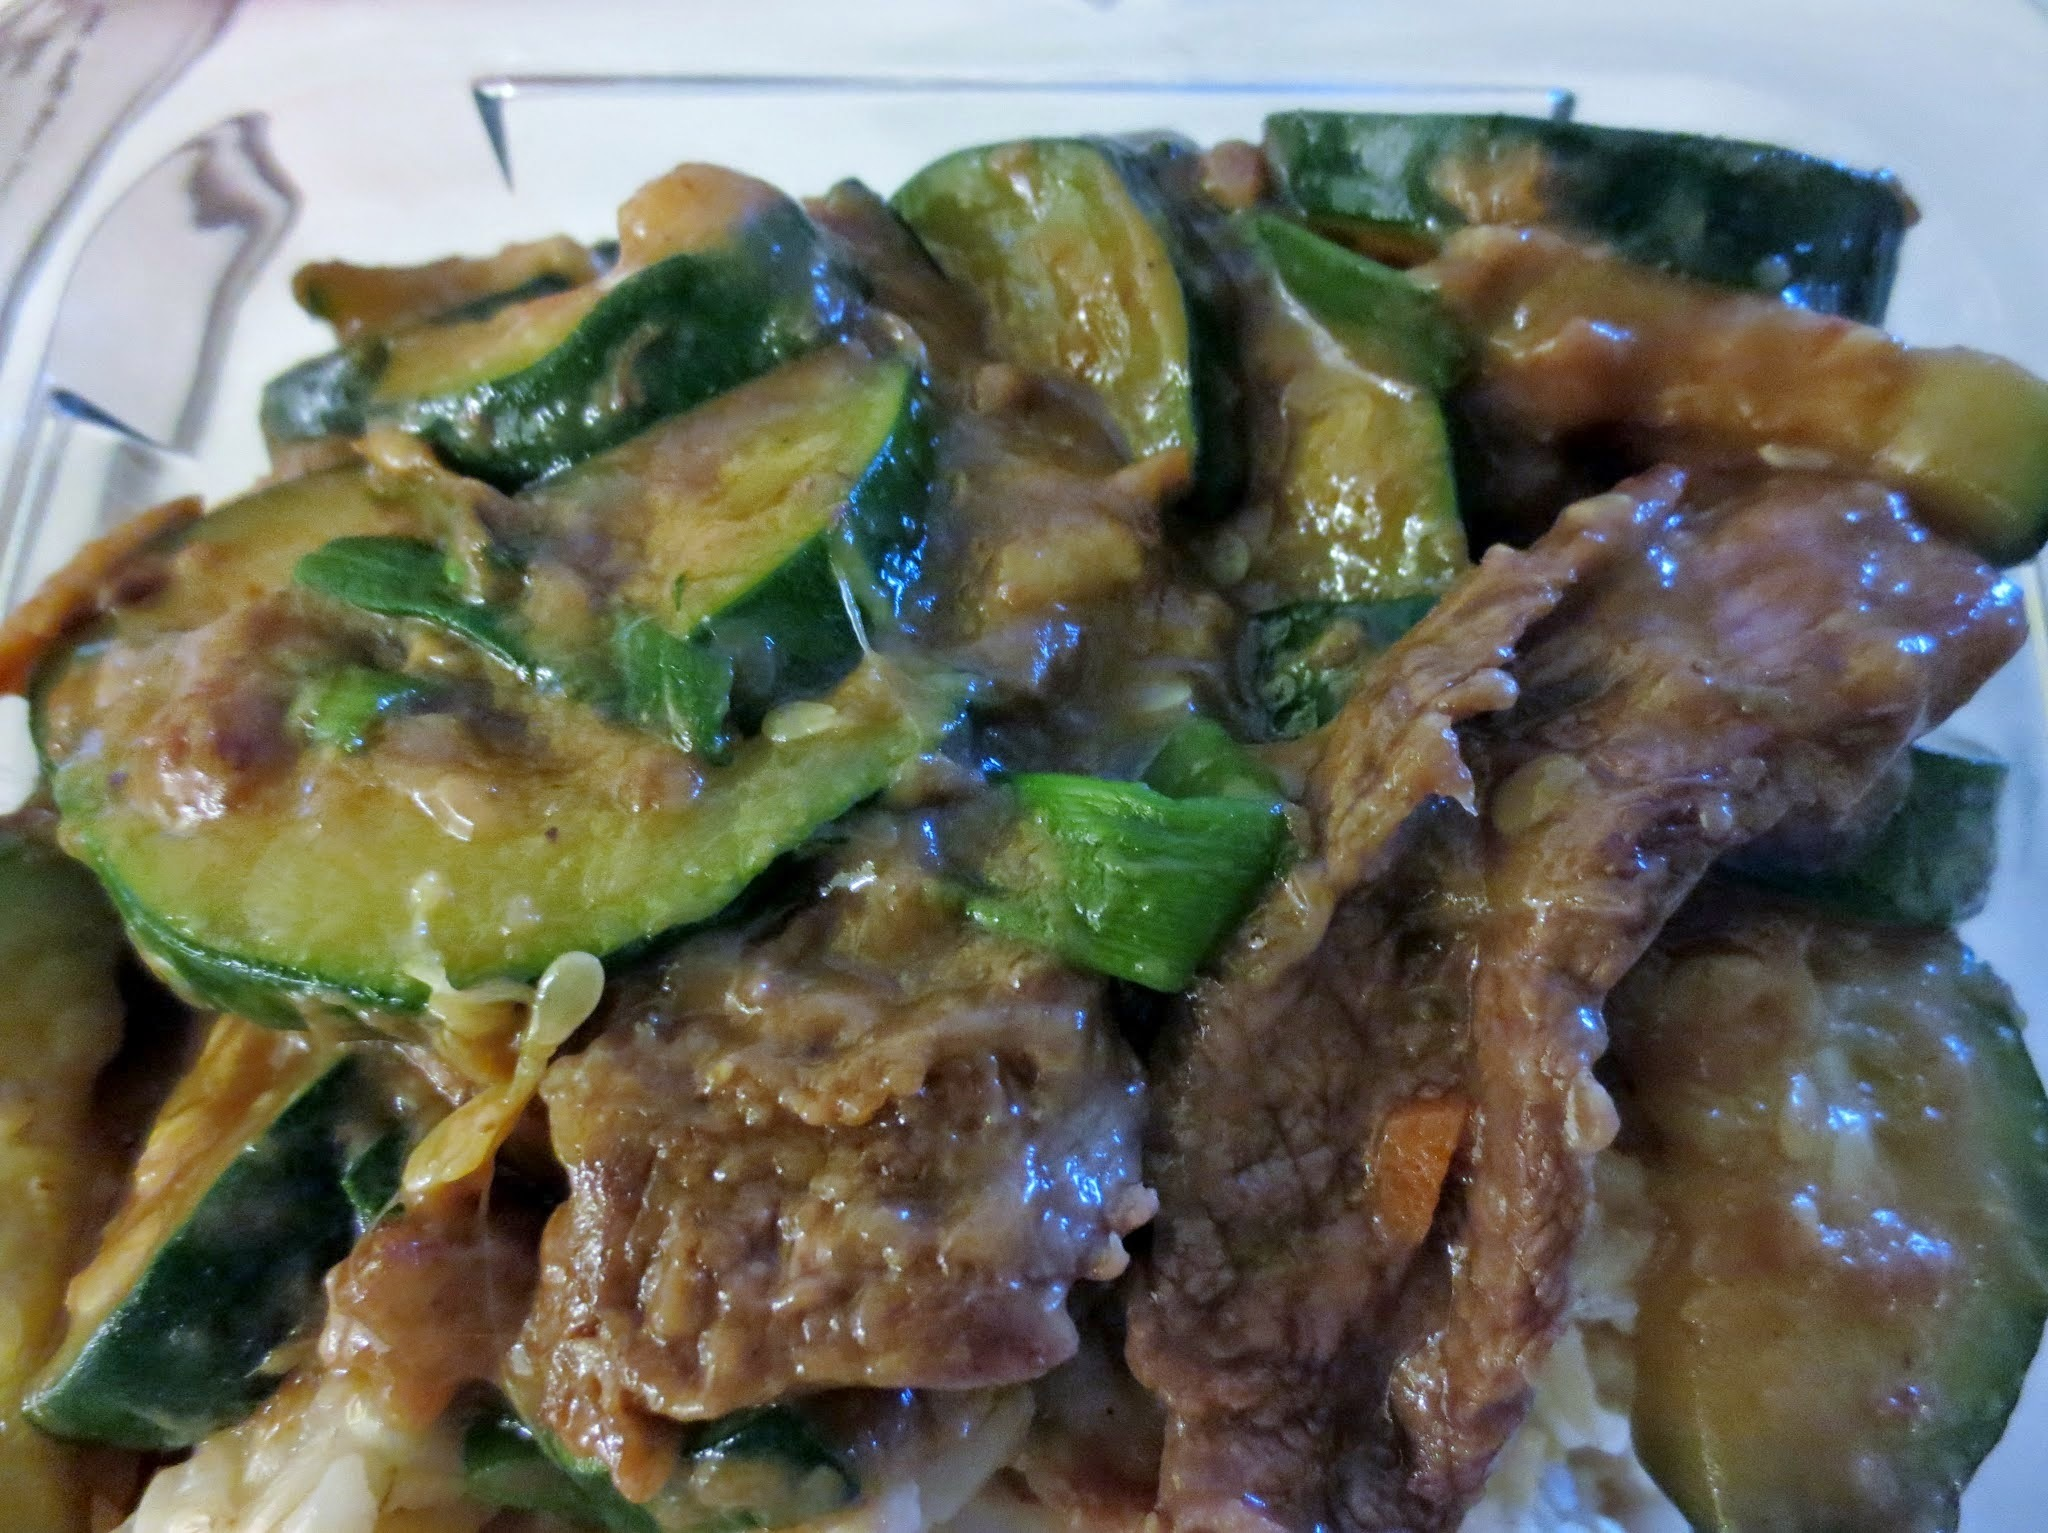 Stirfried Beef with Zucchini, Ginger and Scallions